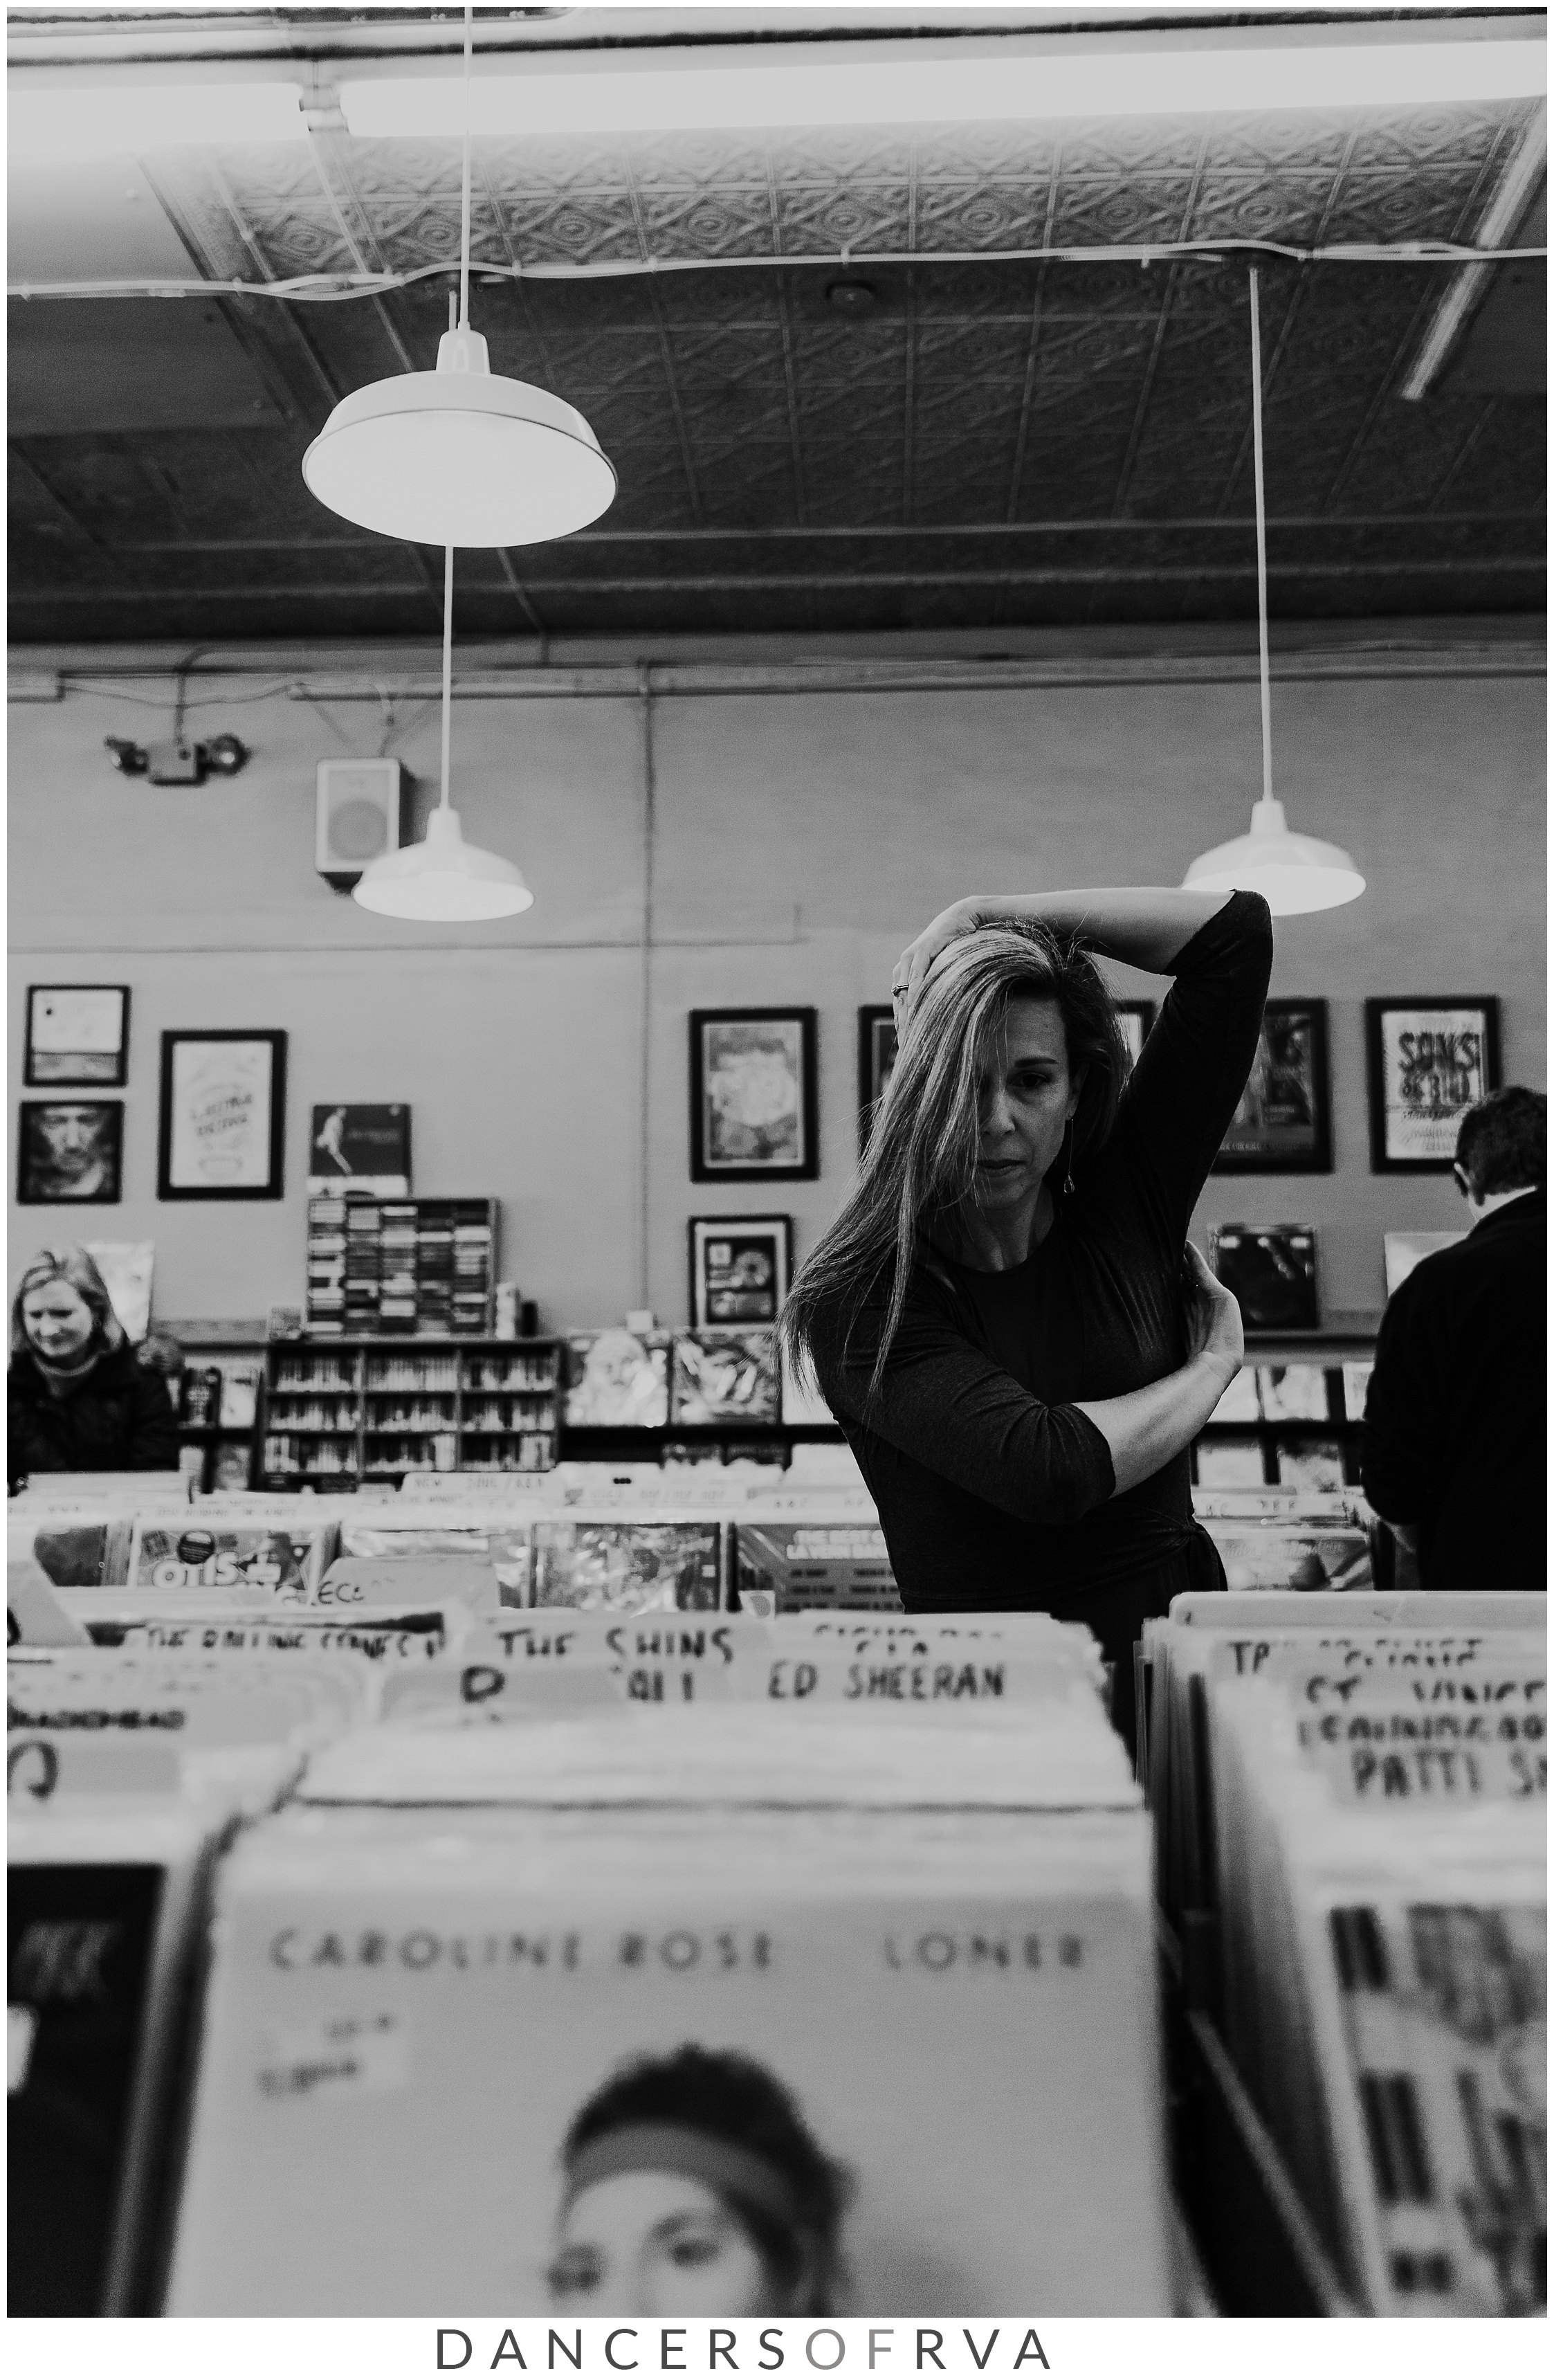 Dancer at planet 9 record store in Carytown